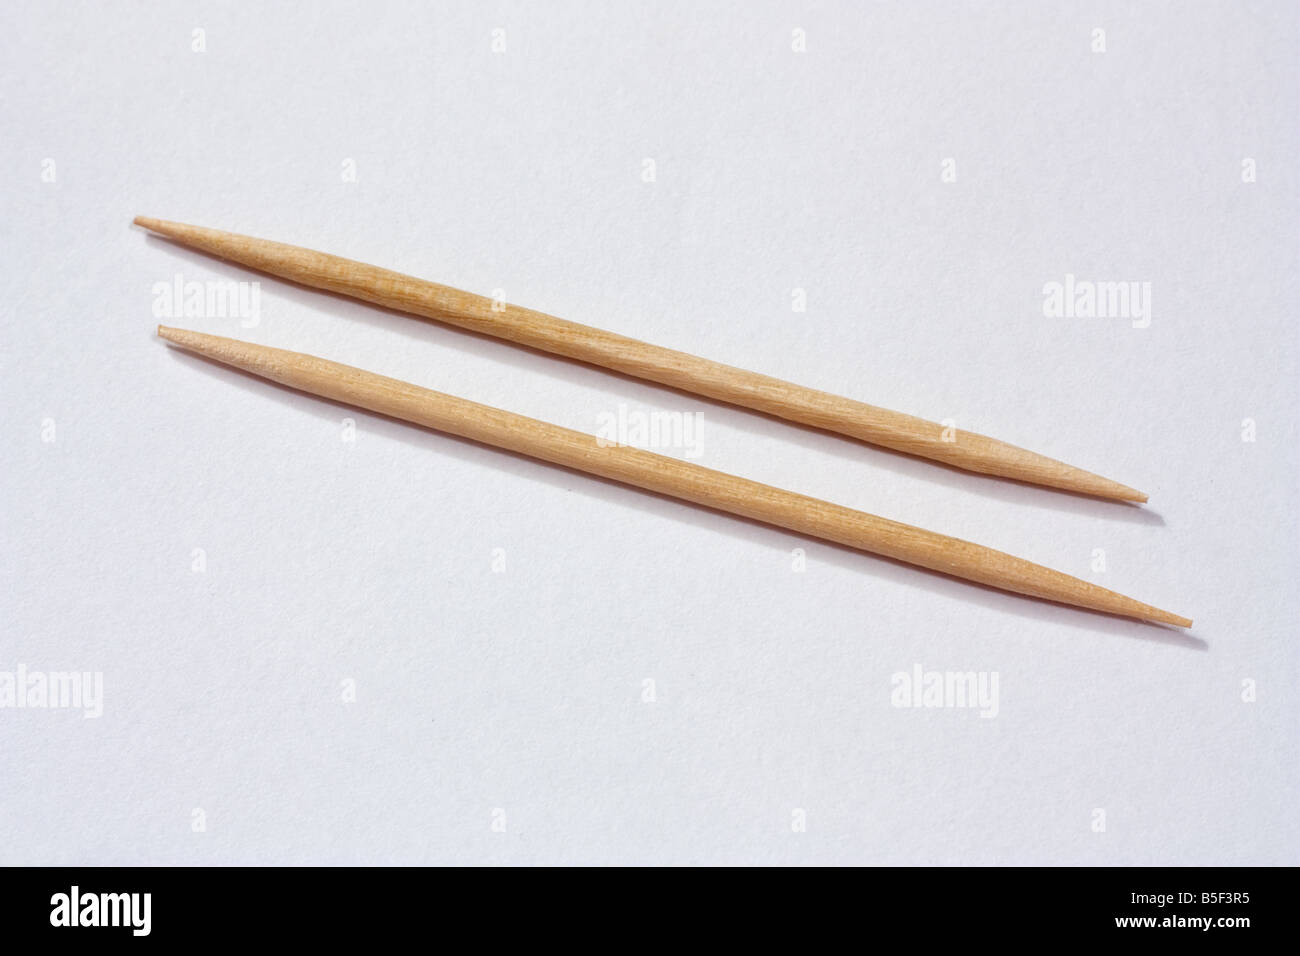 A close up shot of two toothpicks laid in parallel - Stock Image